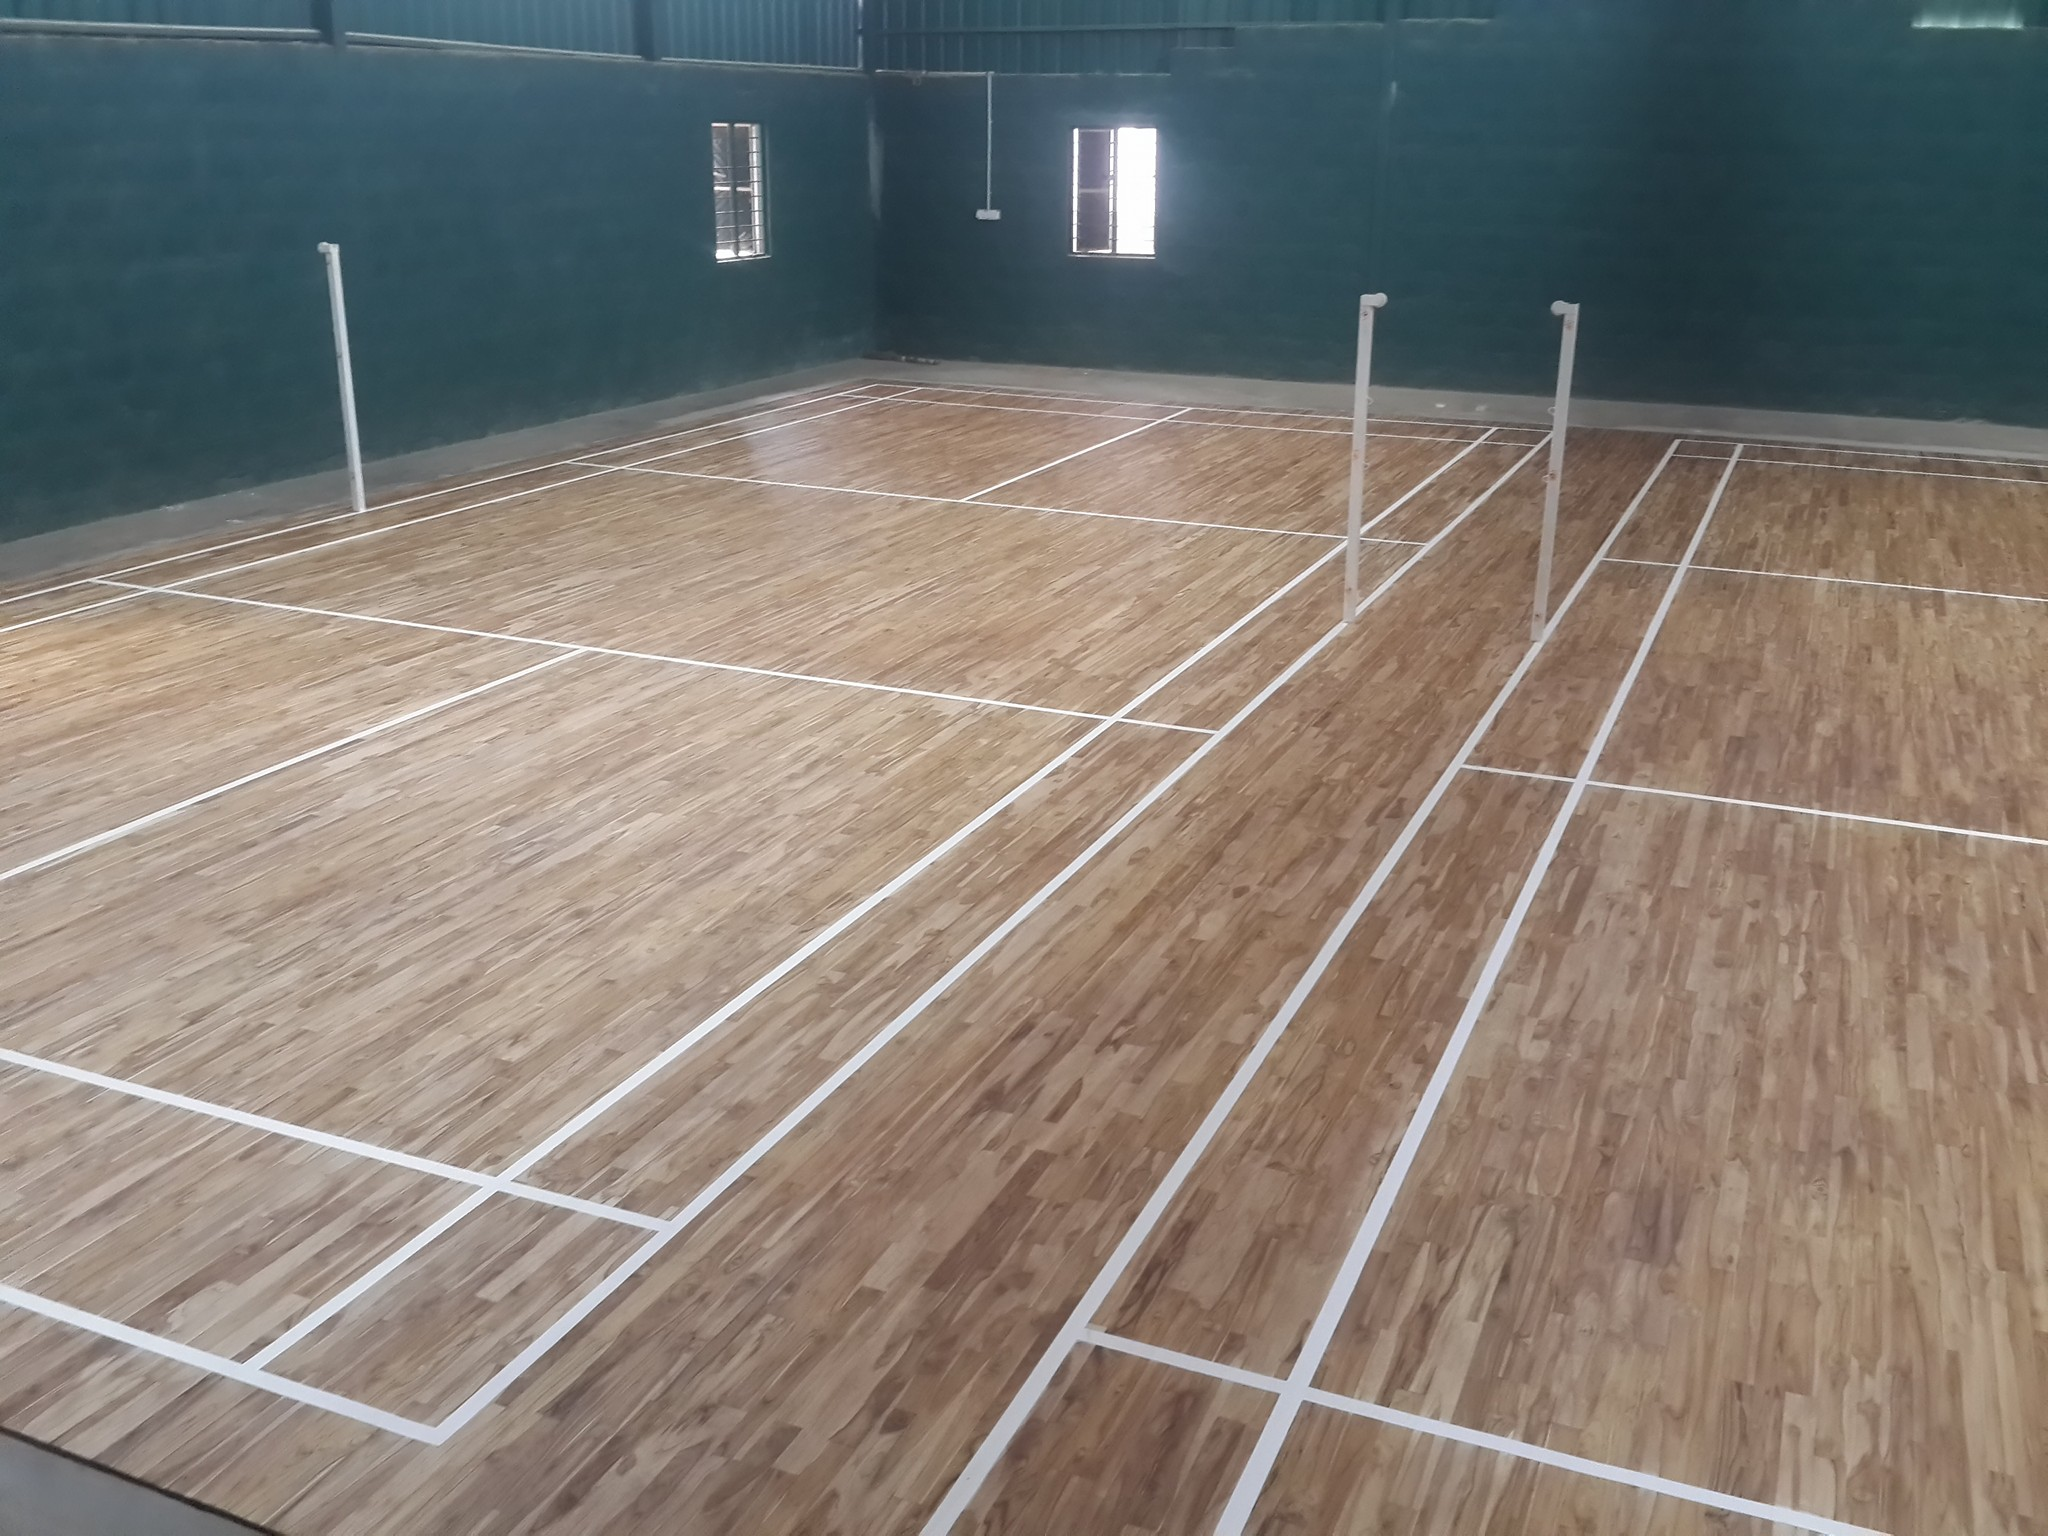 Teak floor in India KreedOn